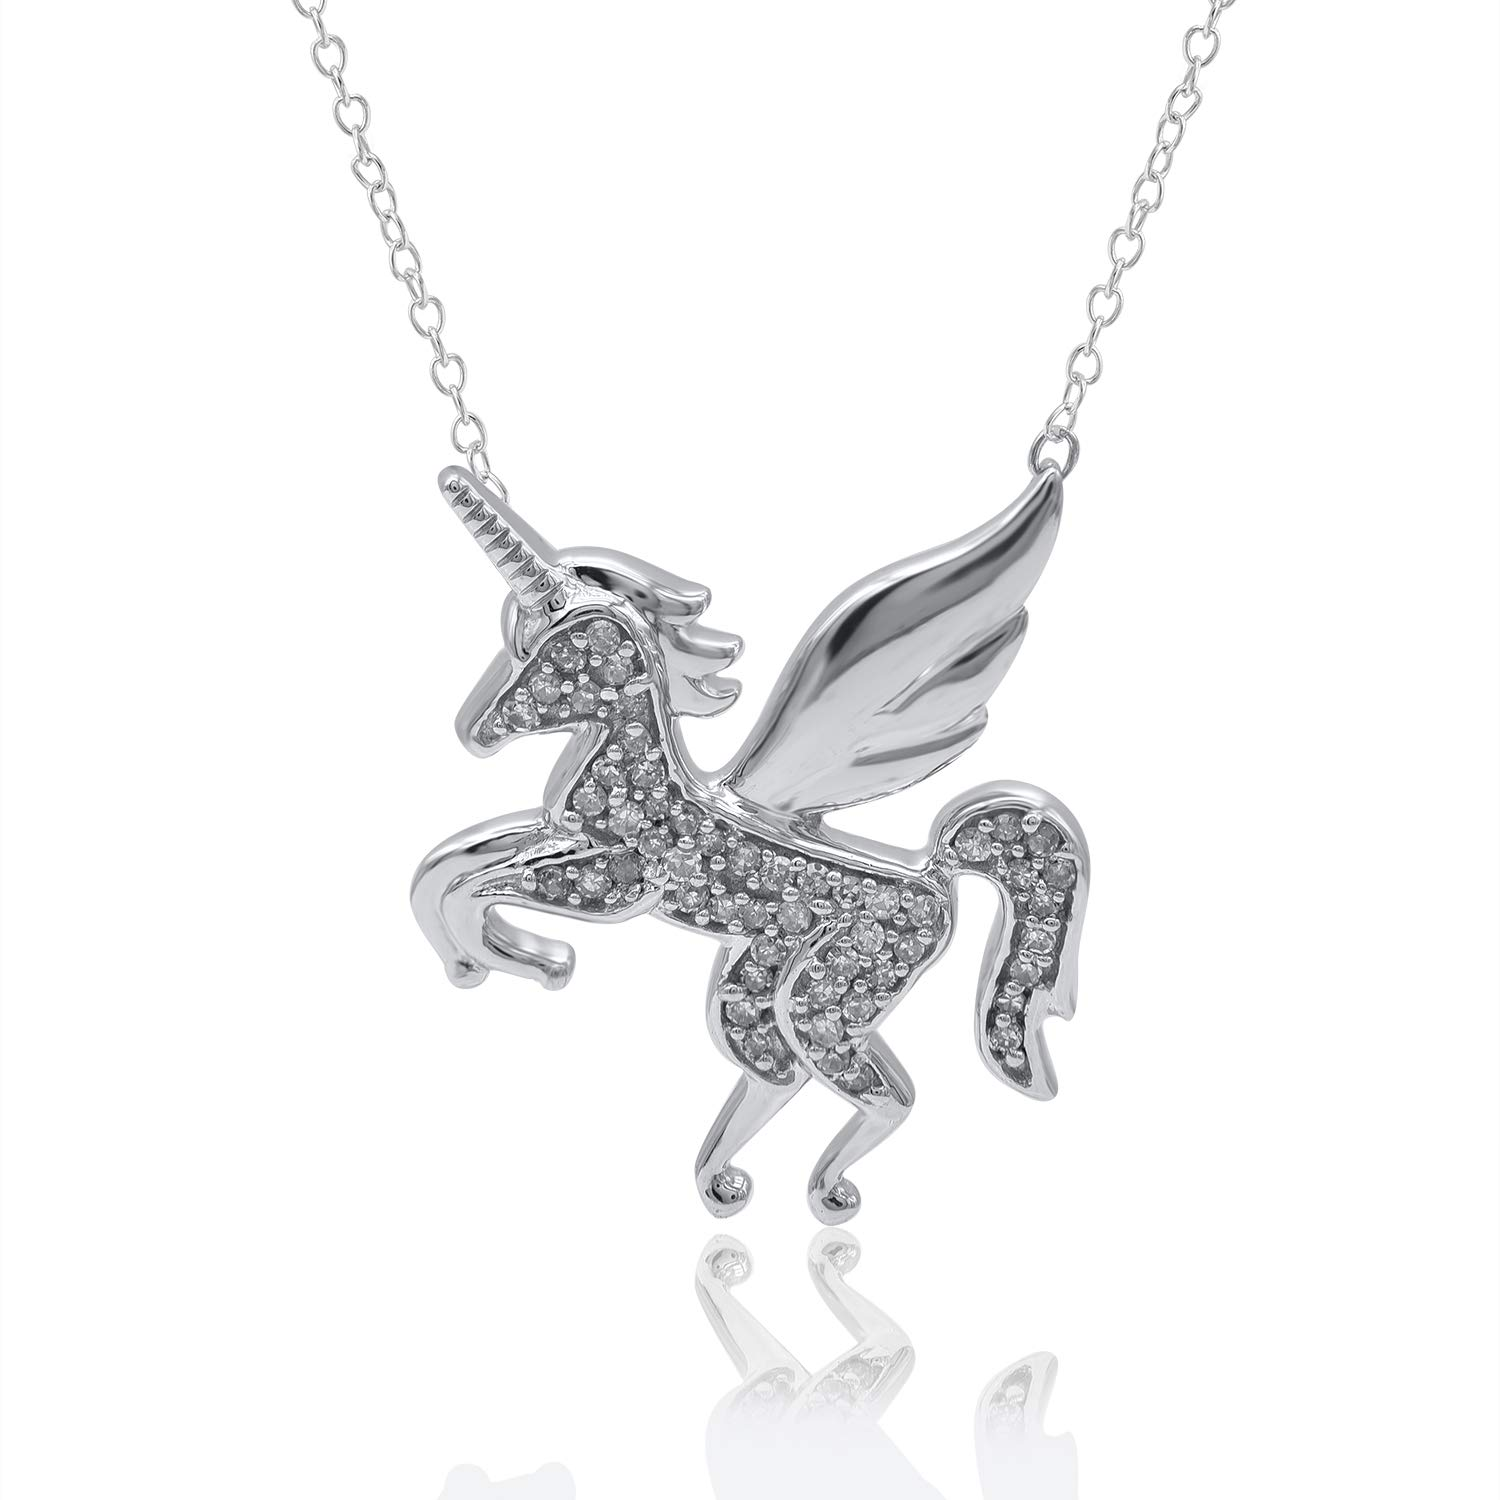 Mothers Day Gifts 1/10 Carat Unicorn Shaped Natural Diamond Pendant Necklace 10K White Gold (G-H Color, I3 Clarity) Diamond Pendant Necklace for Women Diamond Jewelry Gifts for Women